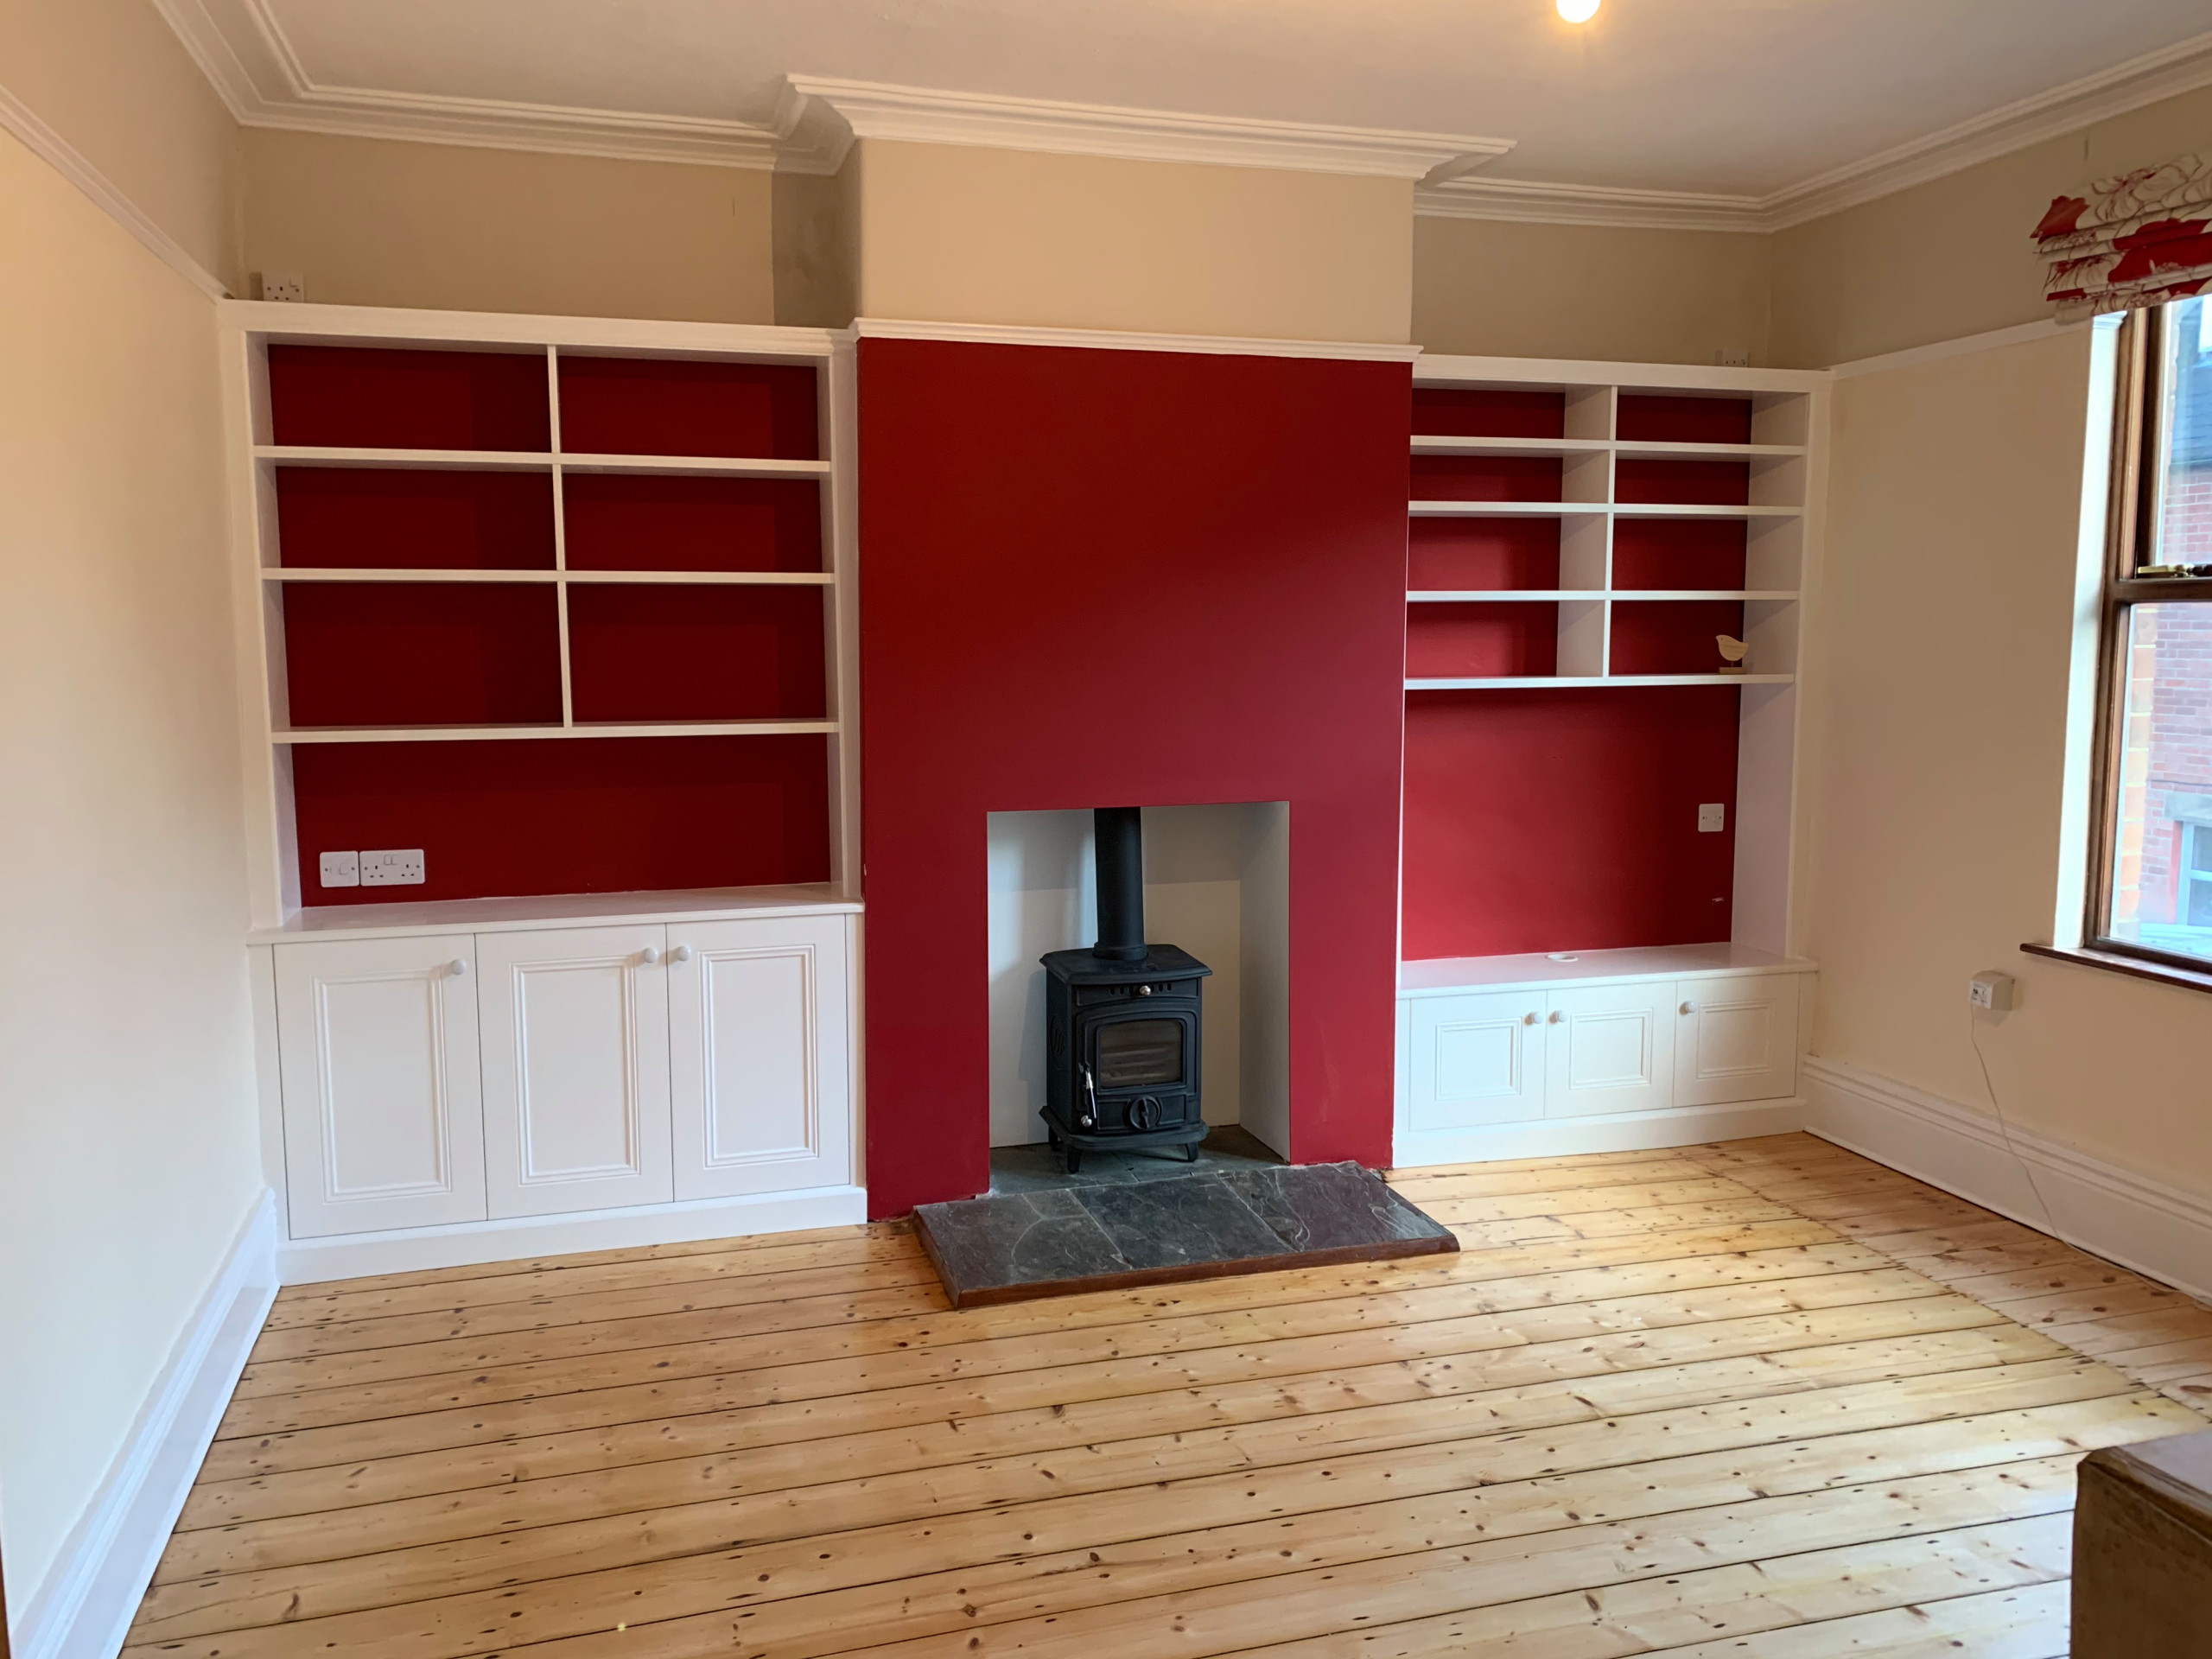 Classic Alcoves with Backless Bookcases Against a Red Wall